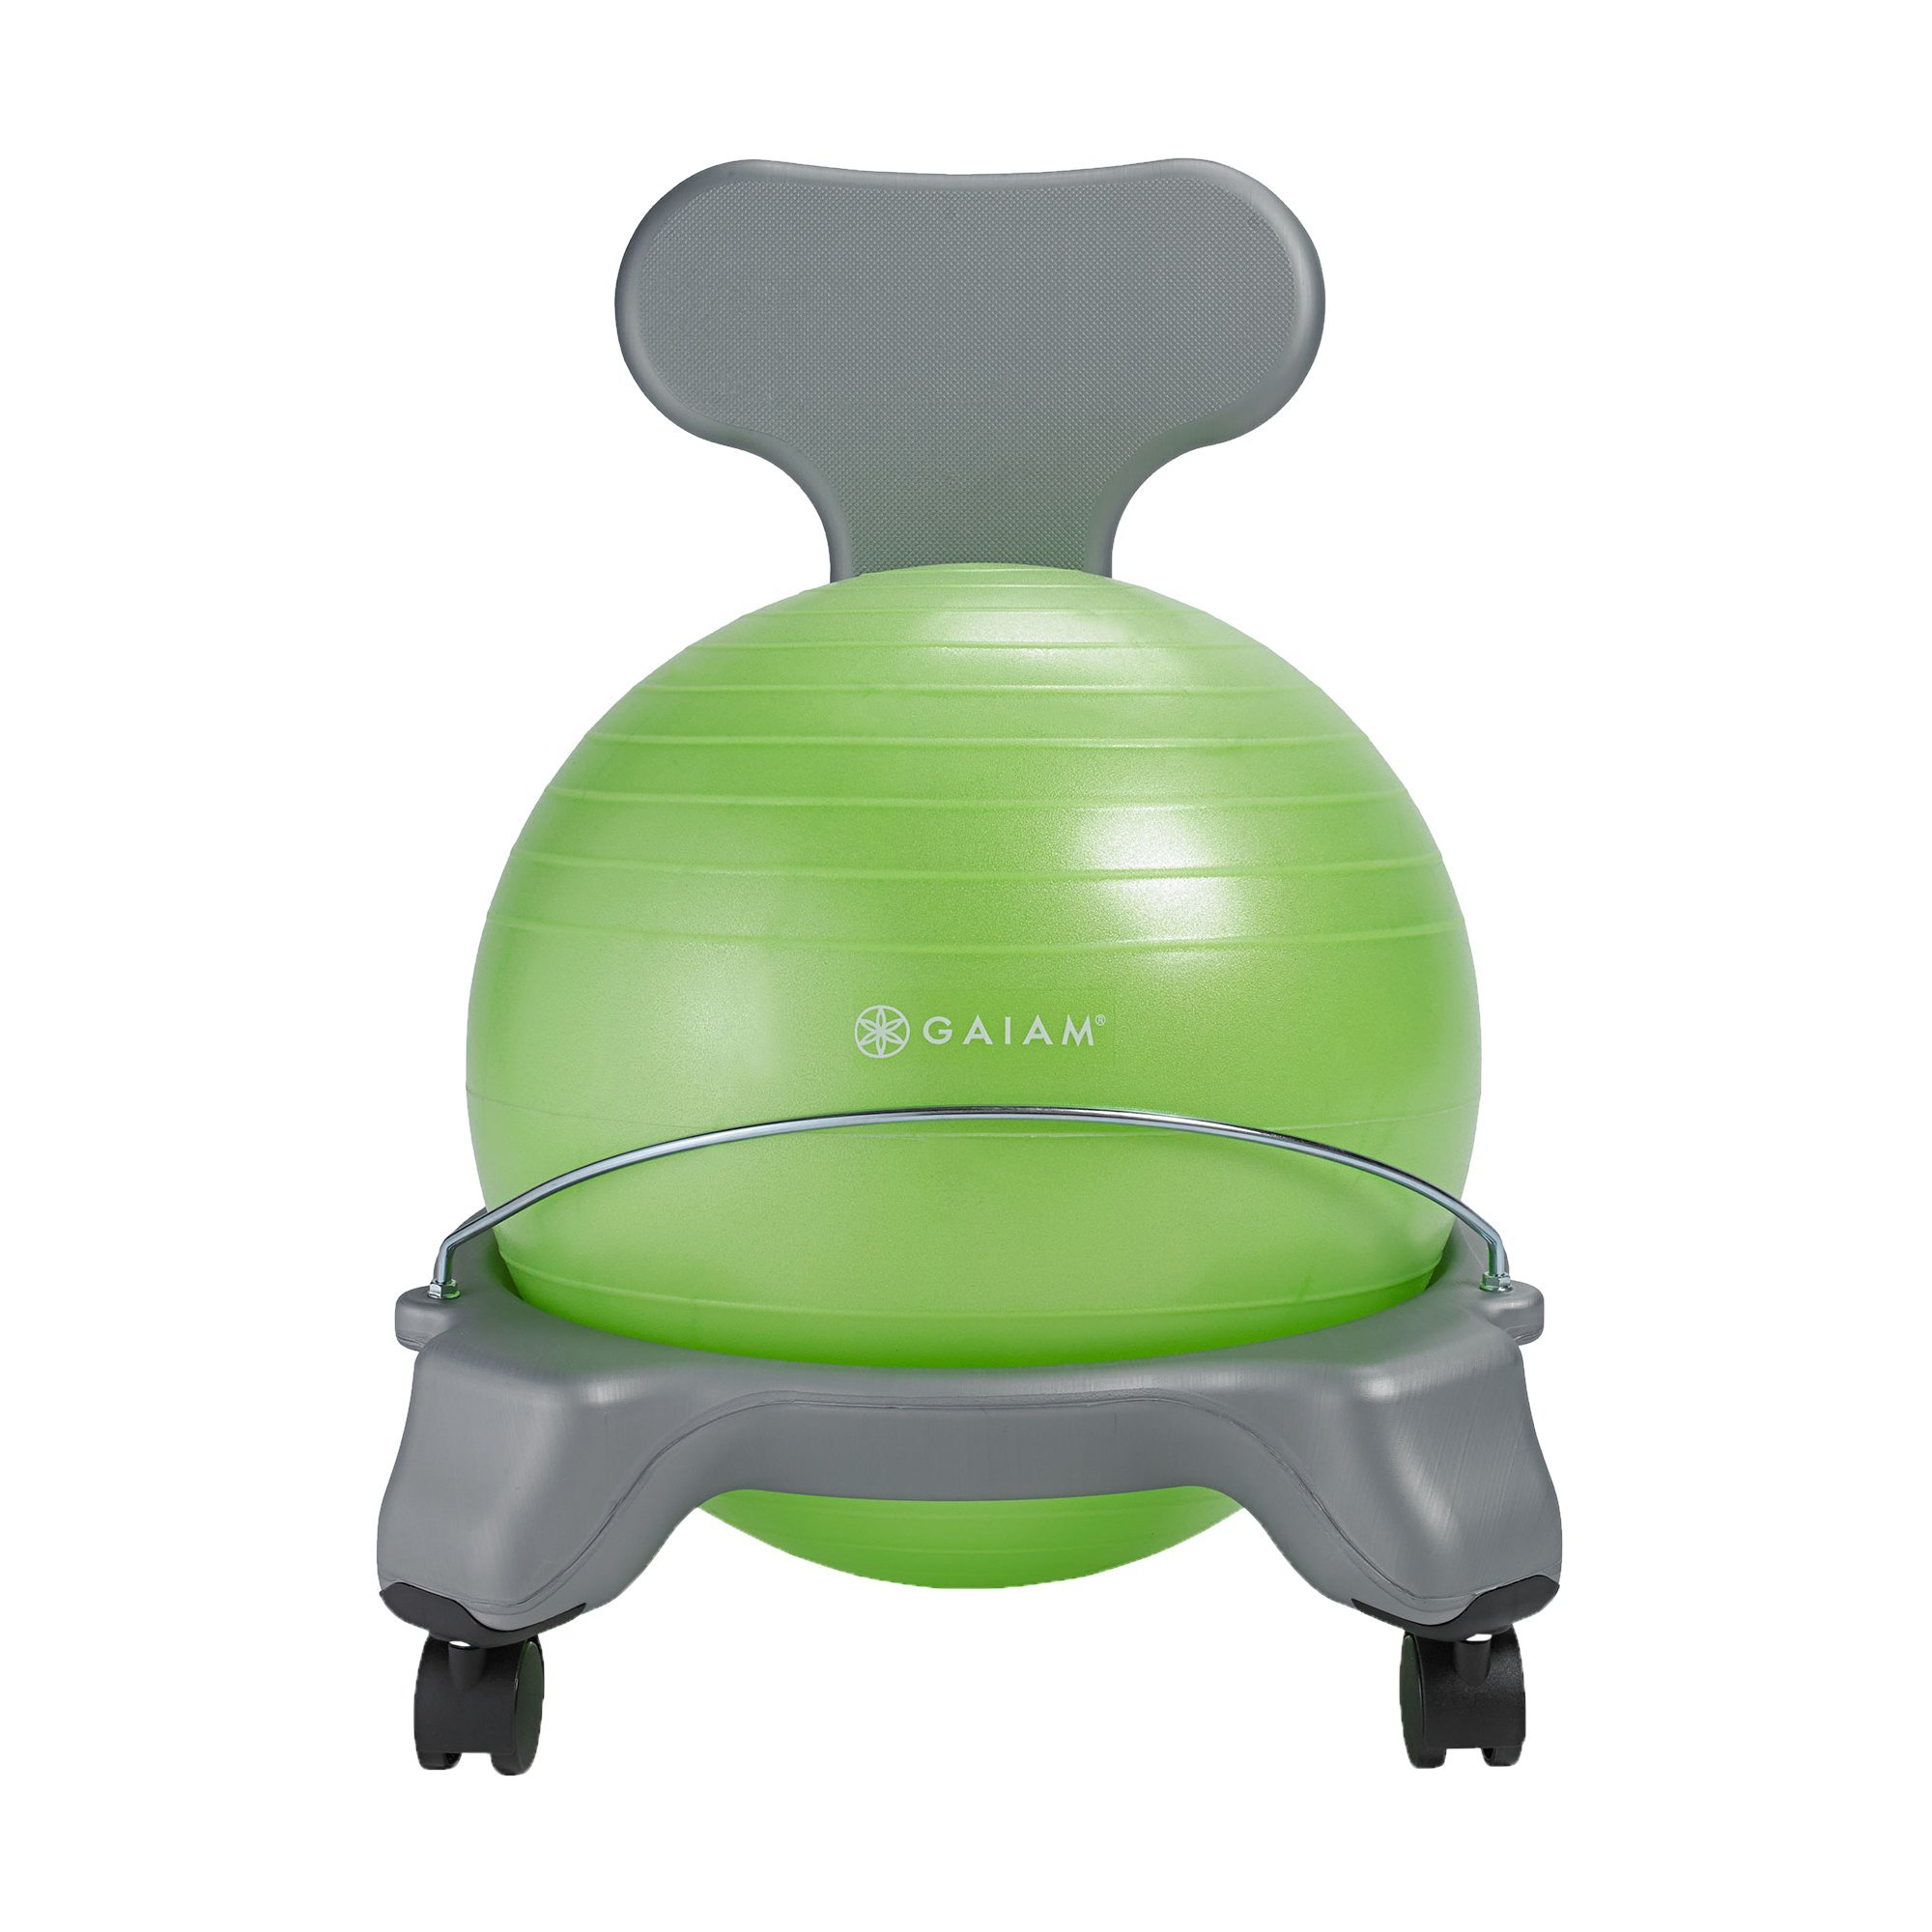 Gaiam Kids Balance Ball Chair - Classic Kid's Stability Ball Chair, Alternative School Classroom Flexible Desk Seating for Active Students with Satisfaction Guarantee, Green (Renewed) by Gaiam